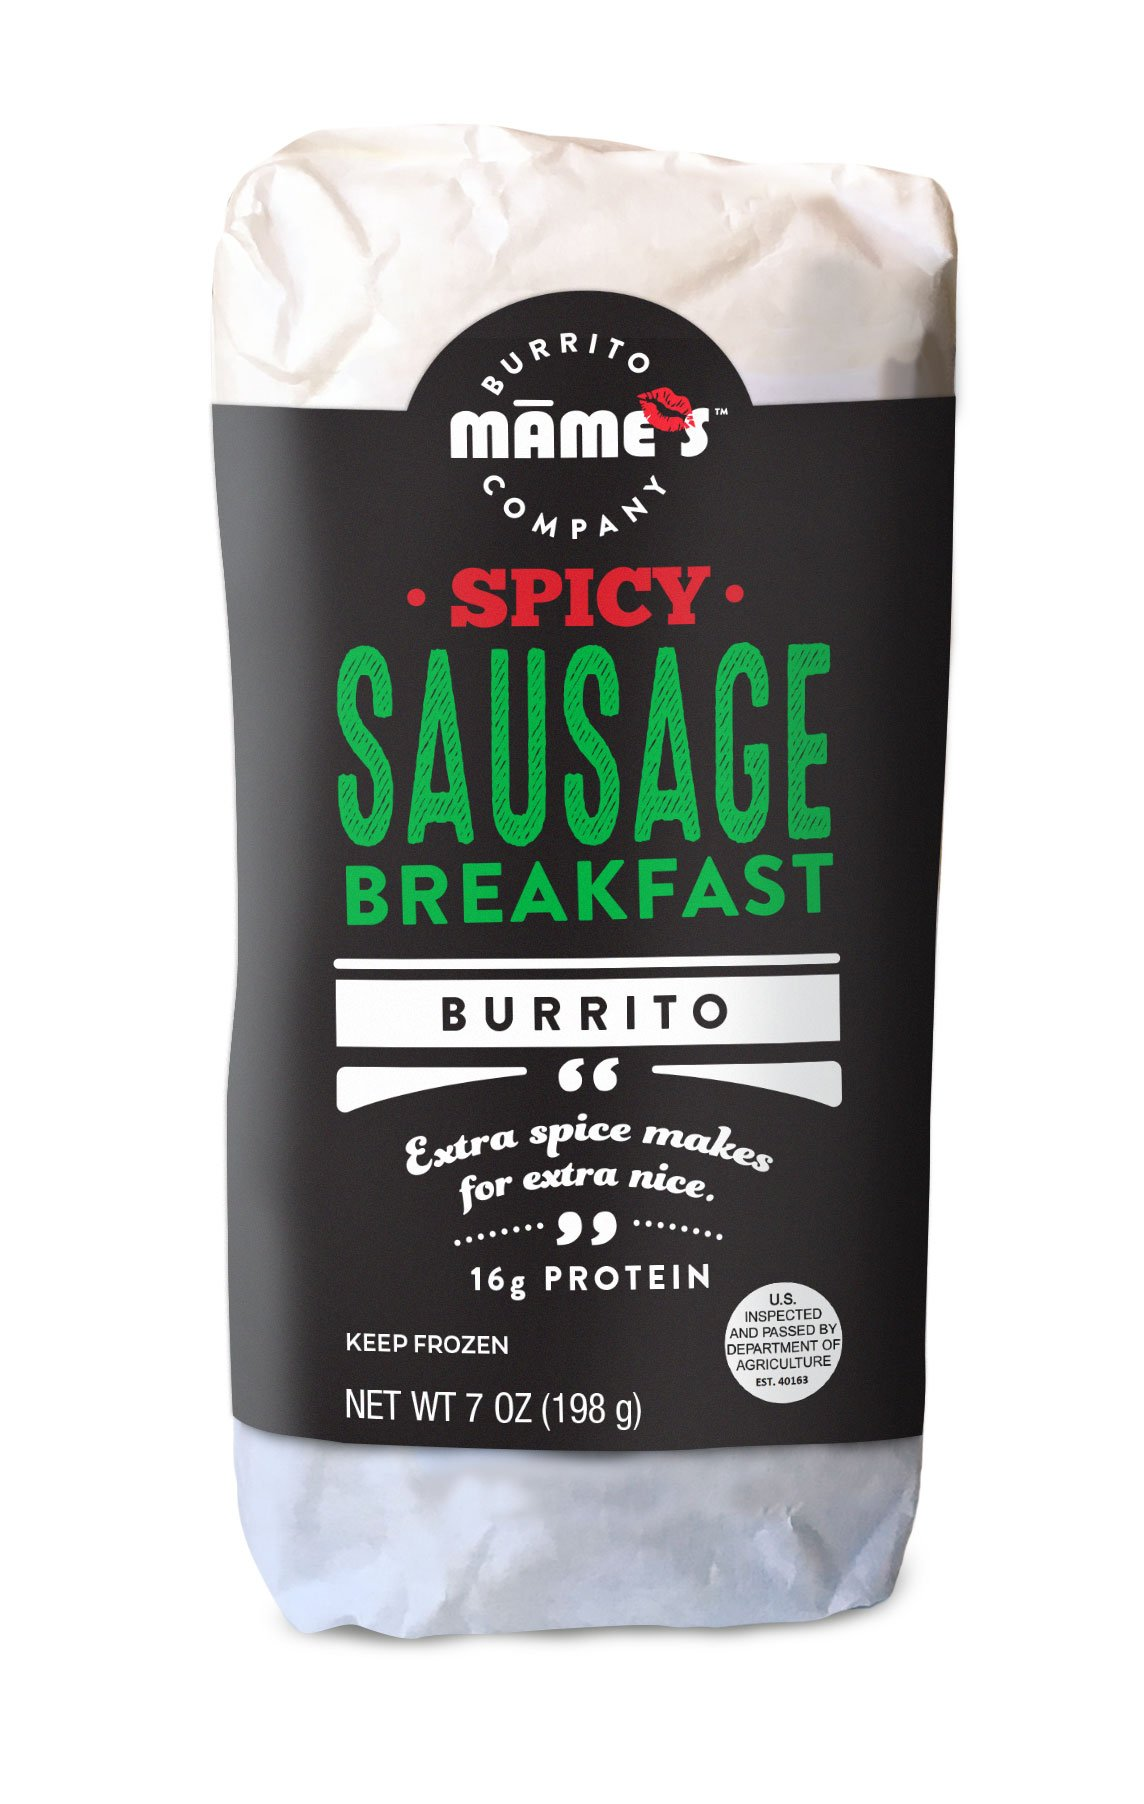 Mame's Burrito Company Spicy Sausage Breakfast Burrito, 7 Ounce (Pack of 12)